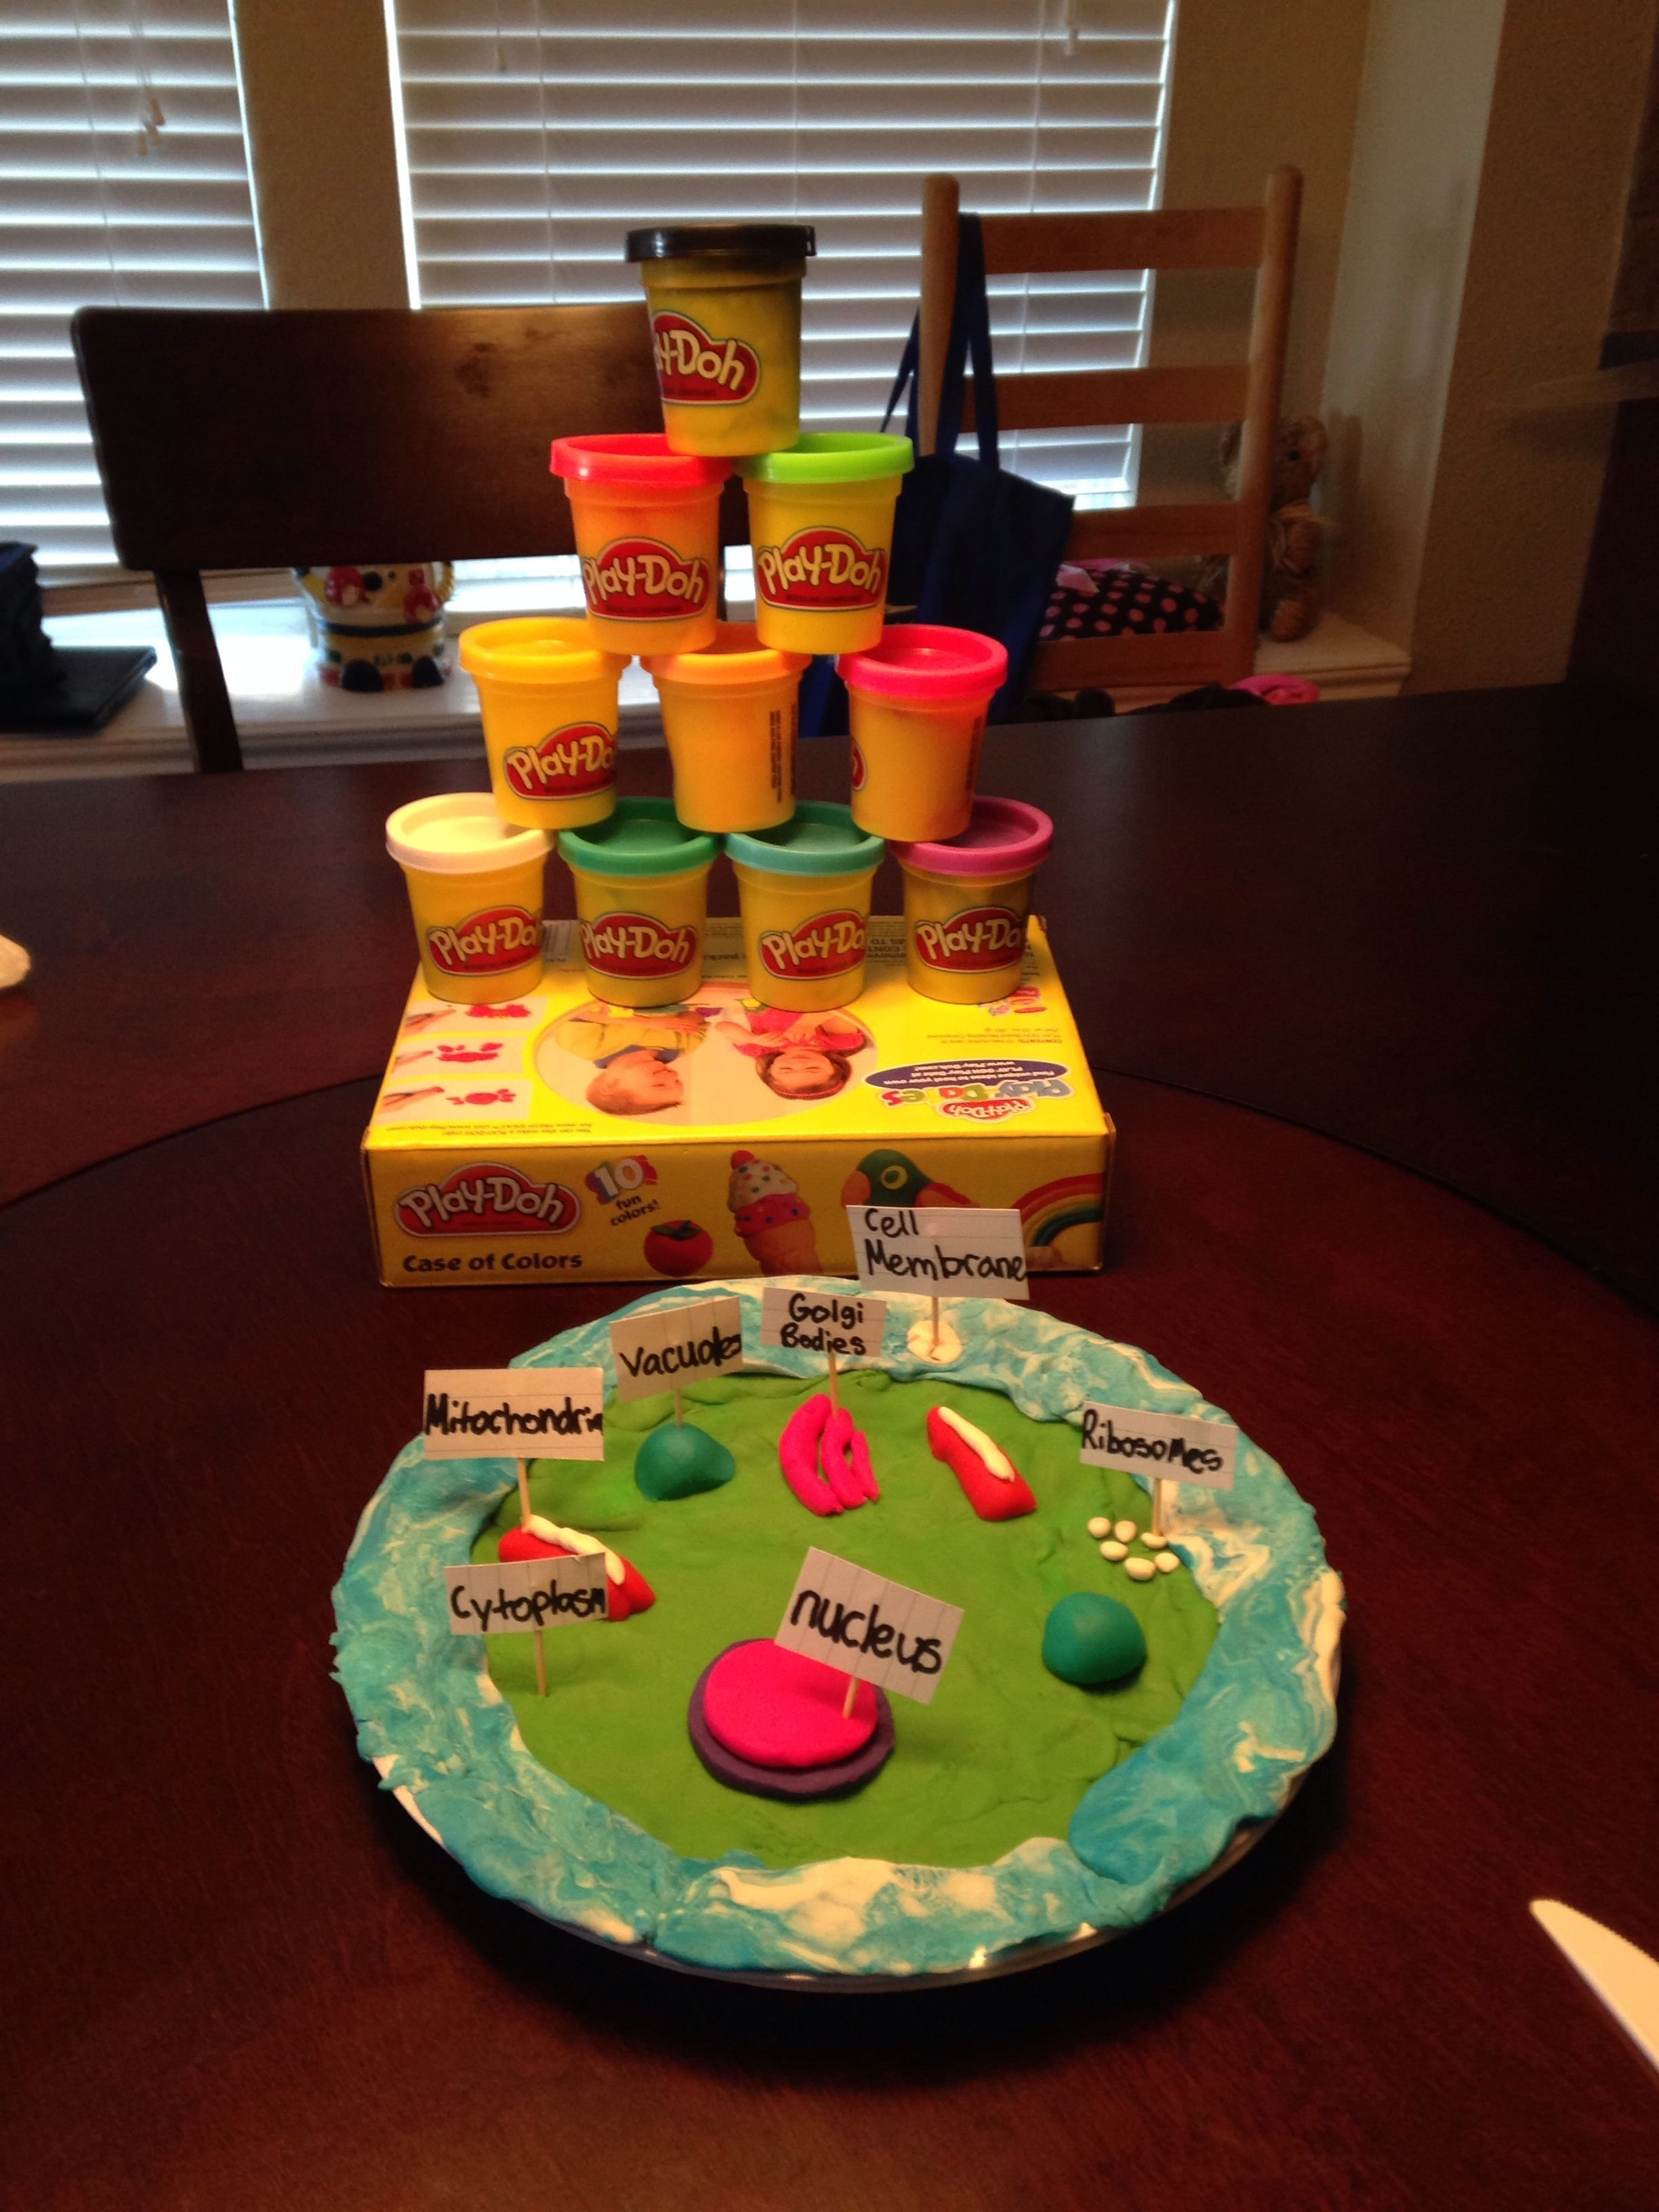 10 Famous 3D Cell Model Project Ideas how to make a animal cell model with home objects how to make a 7 2020